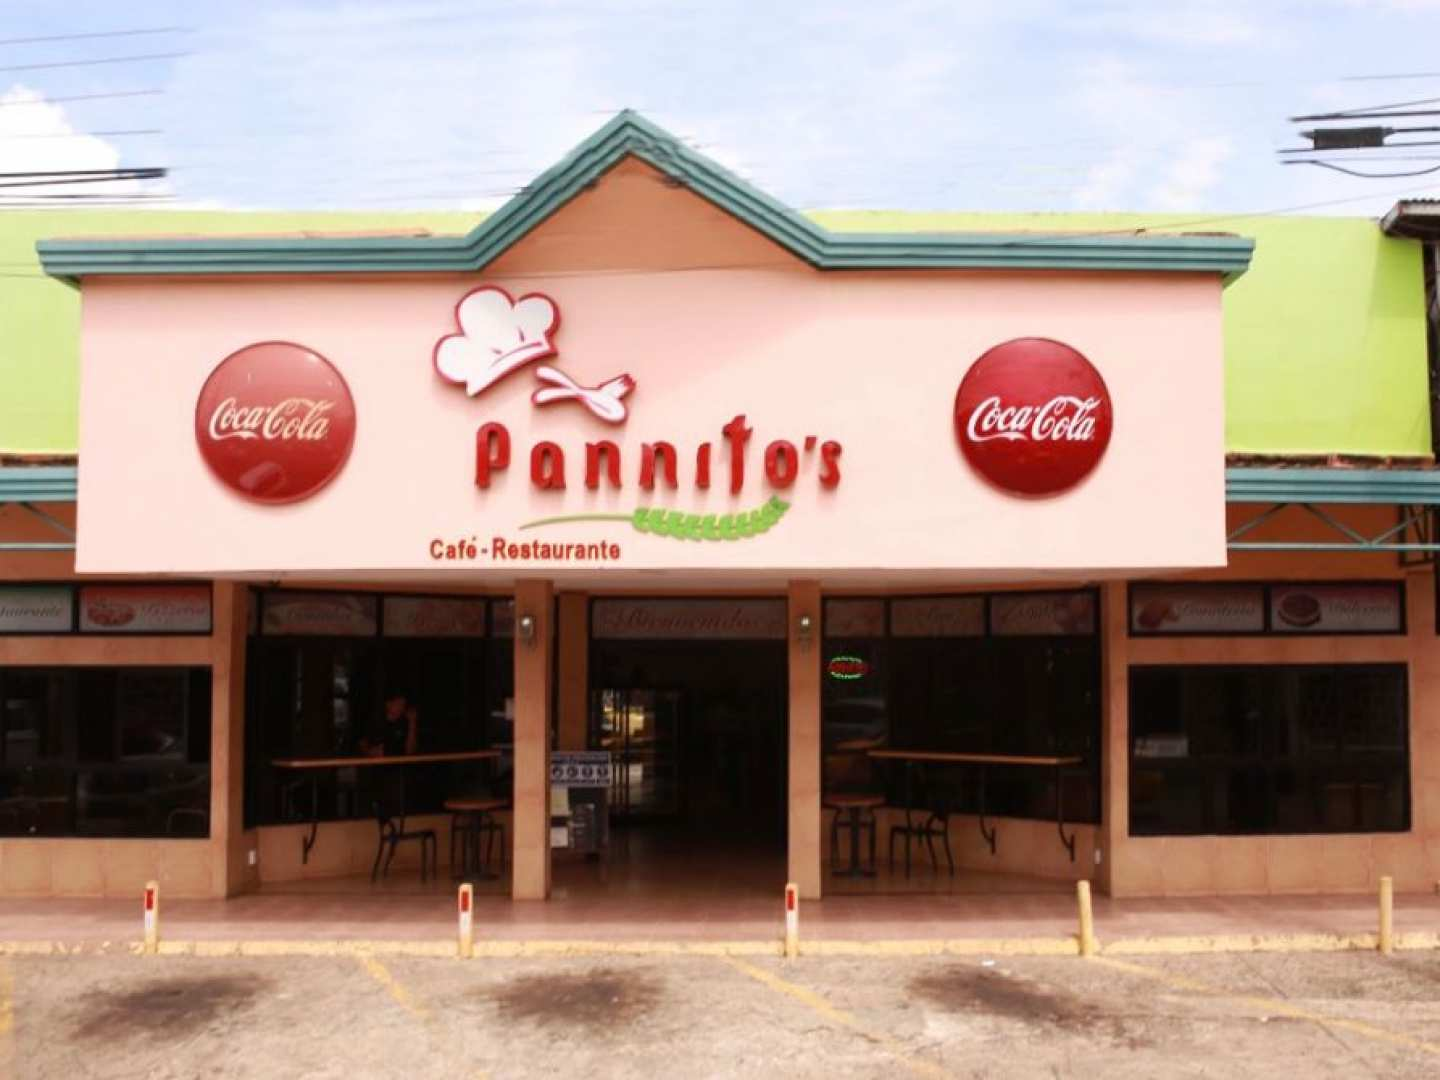 Pannitos Cafe